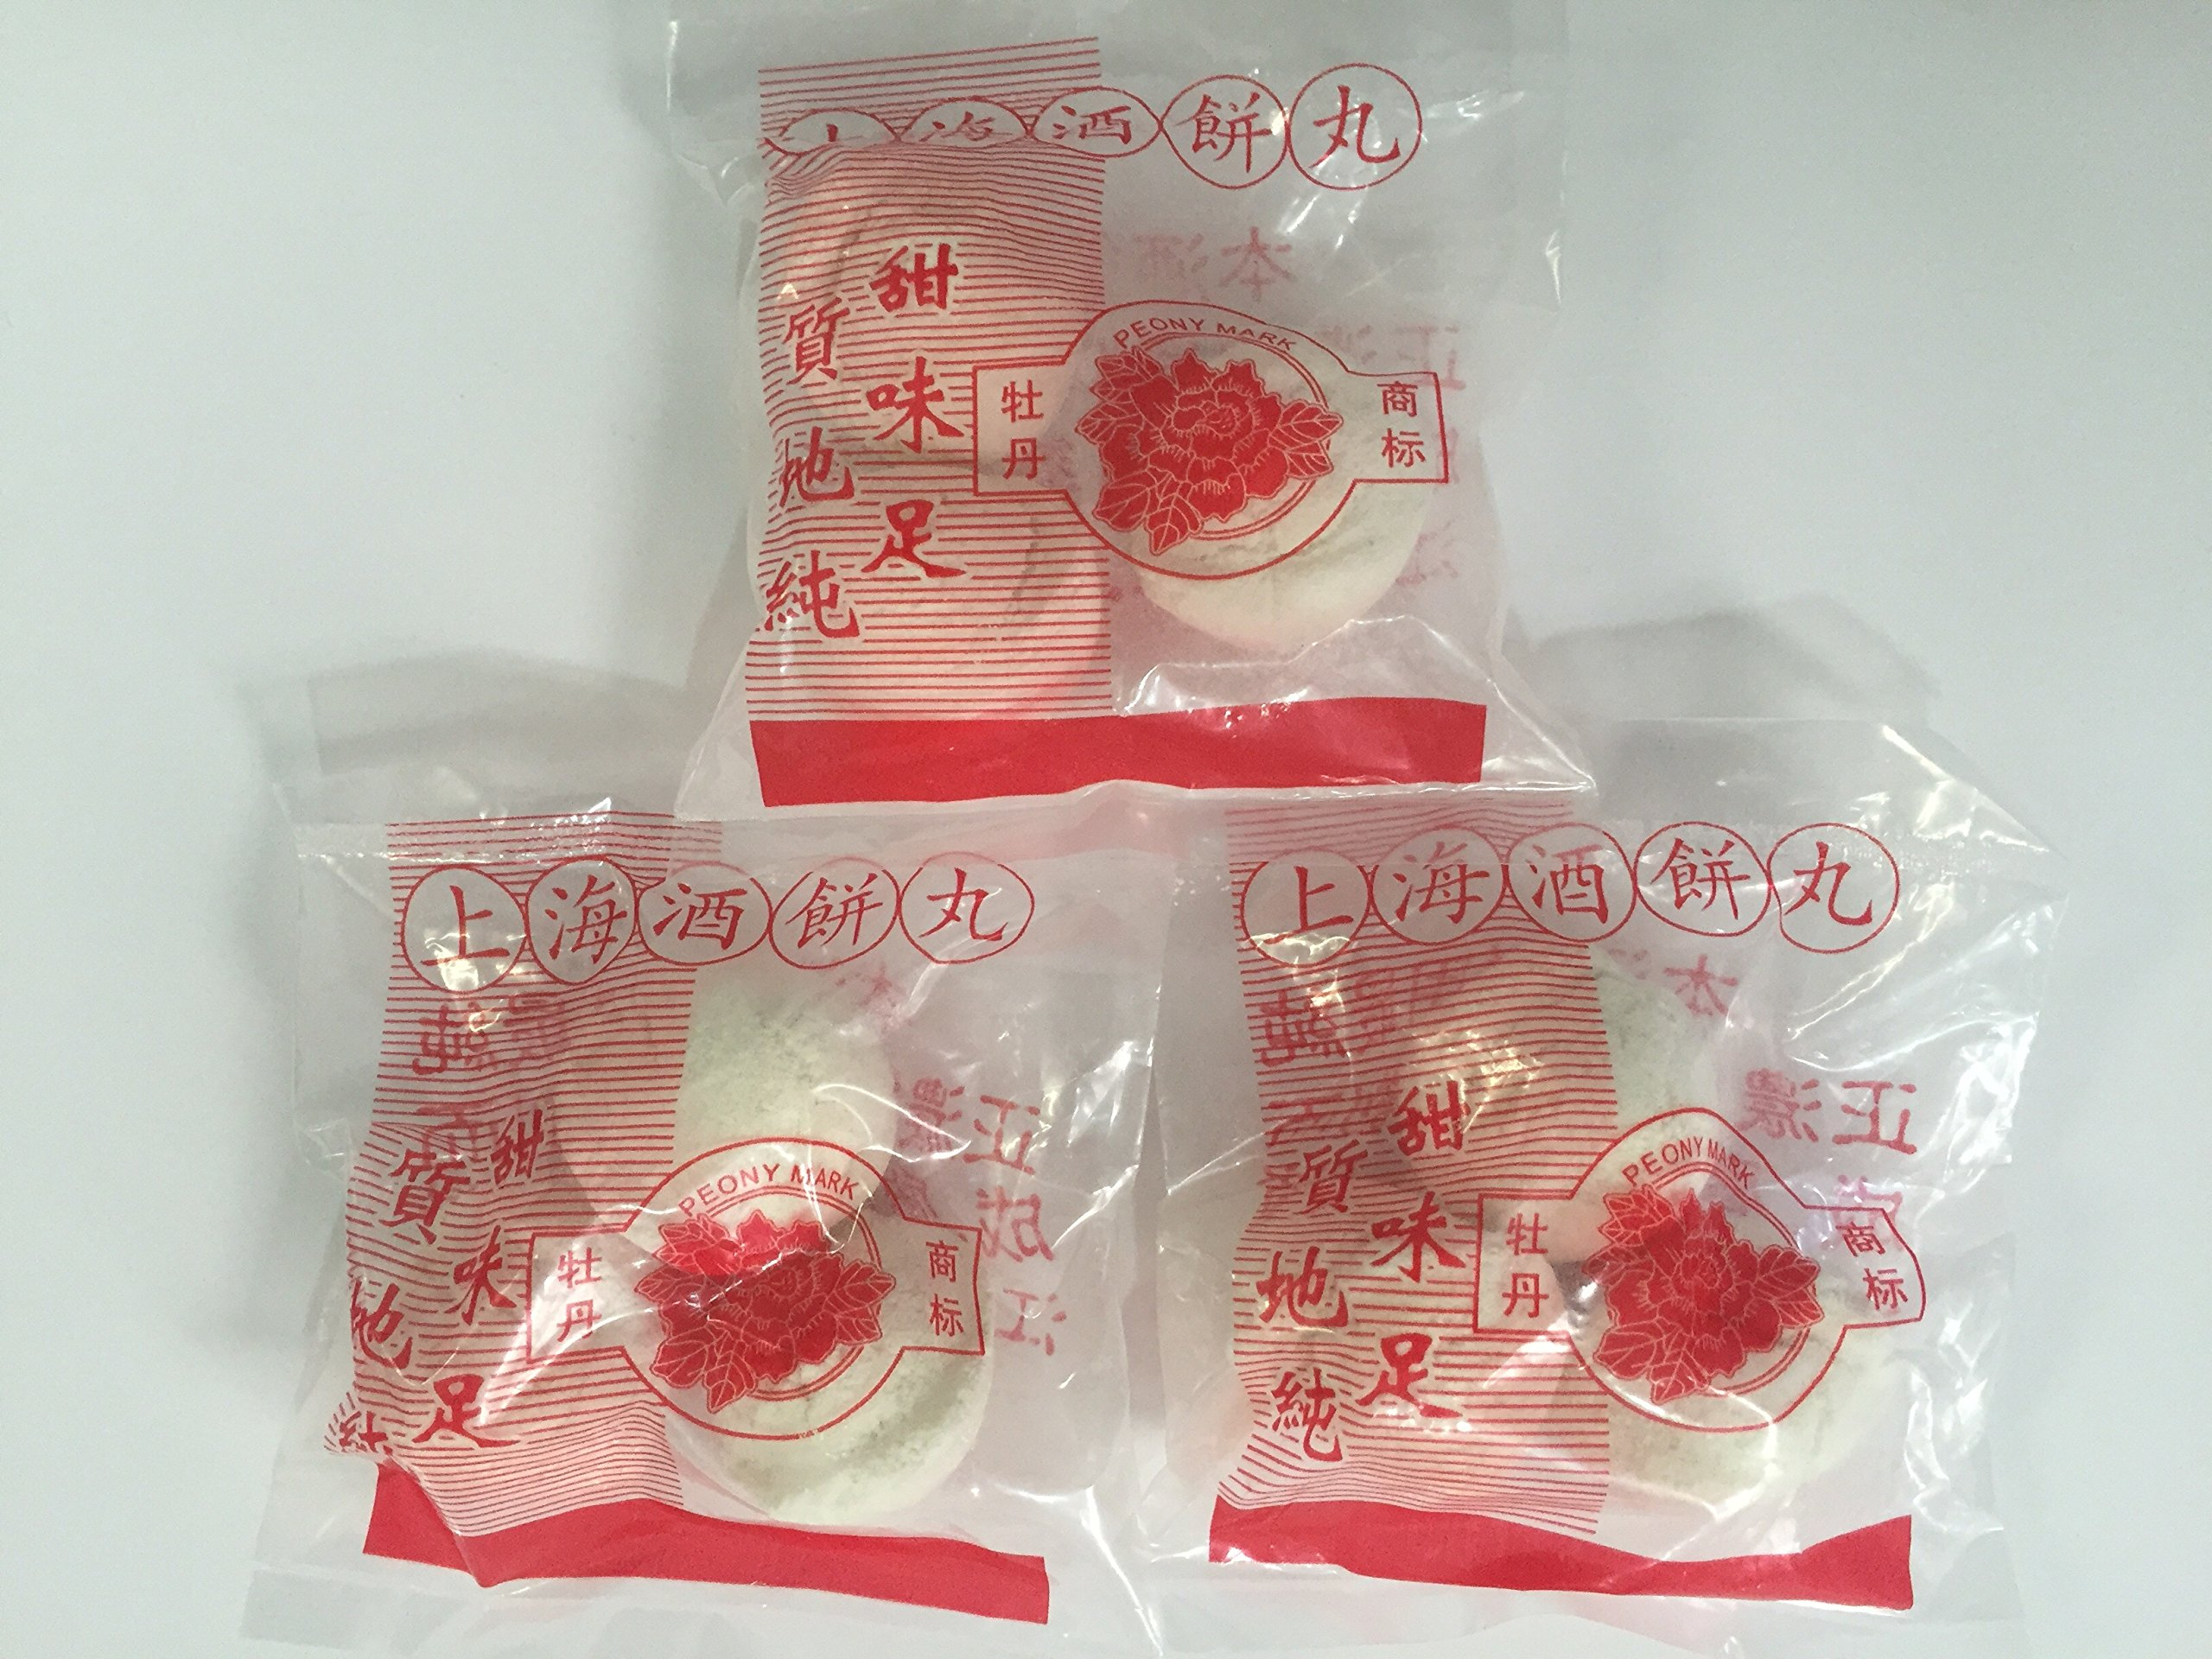 Shanghai Yeast Balls - Chinese Rice Wine Starter - 3 Balls - Per Bags (3 Pack) by Peony Party Time